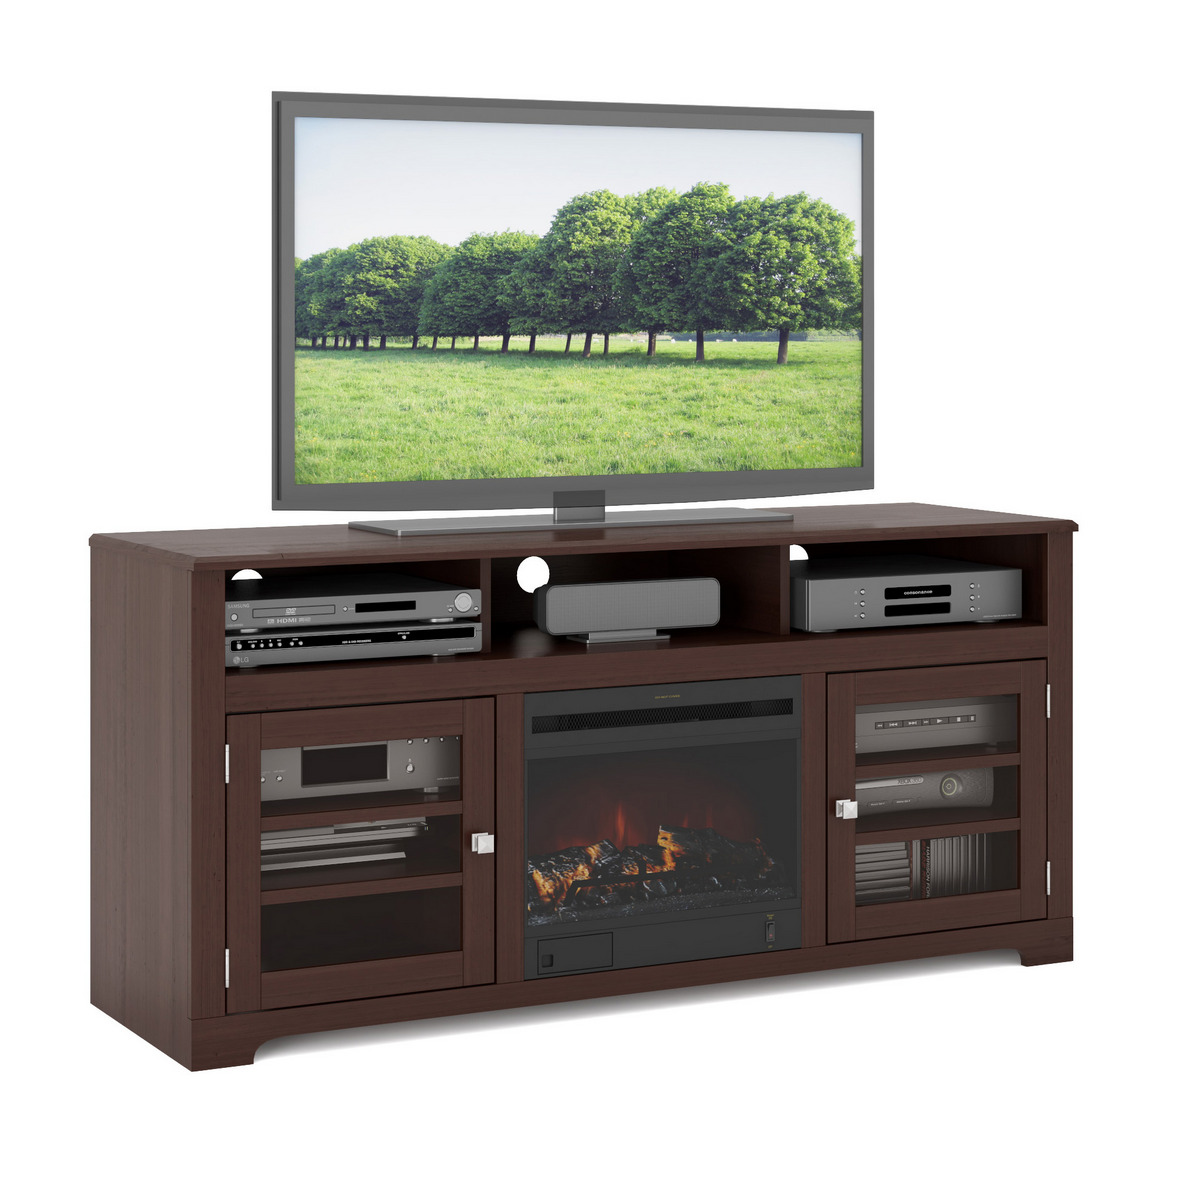 Corliving Fireplace Tv Bench